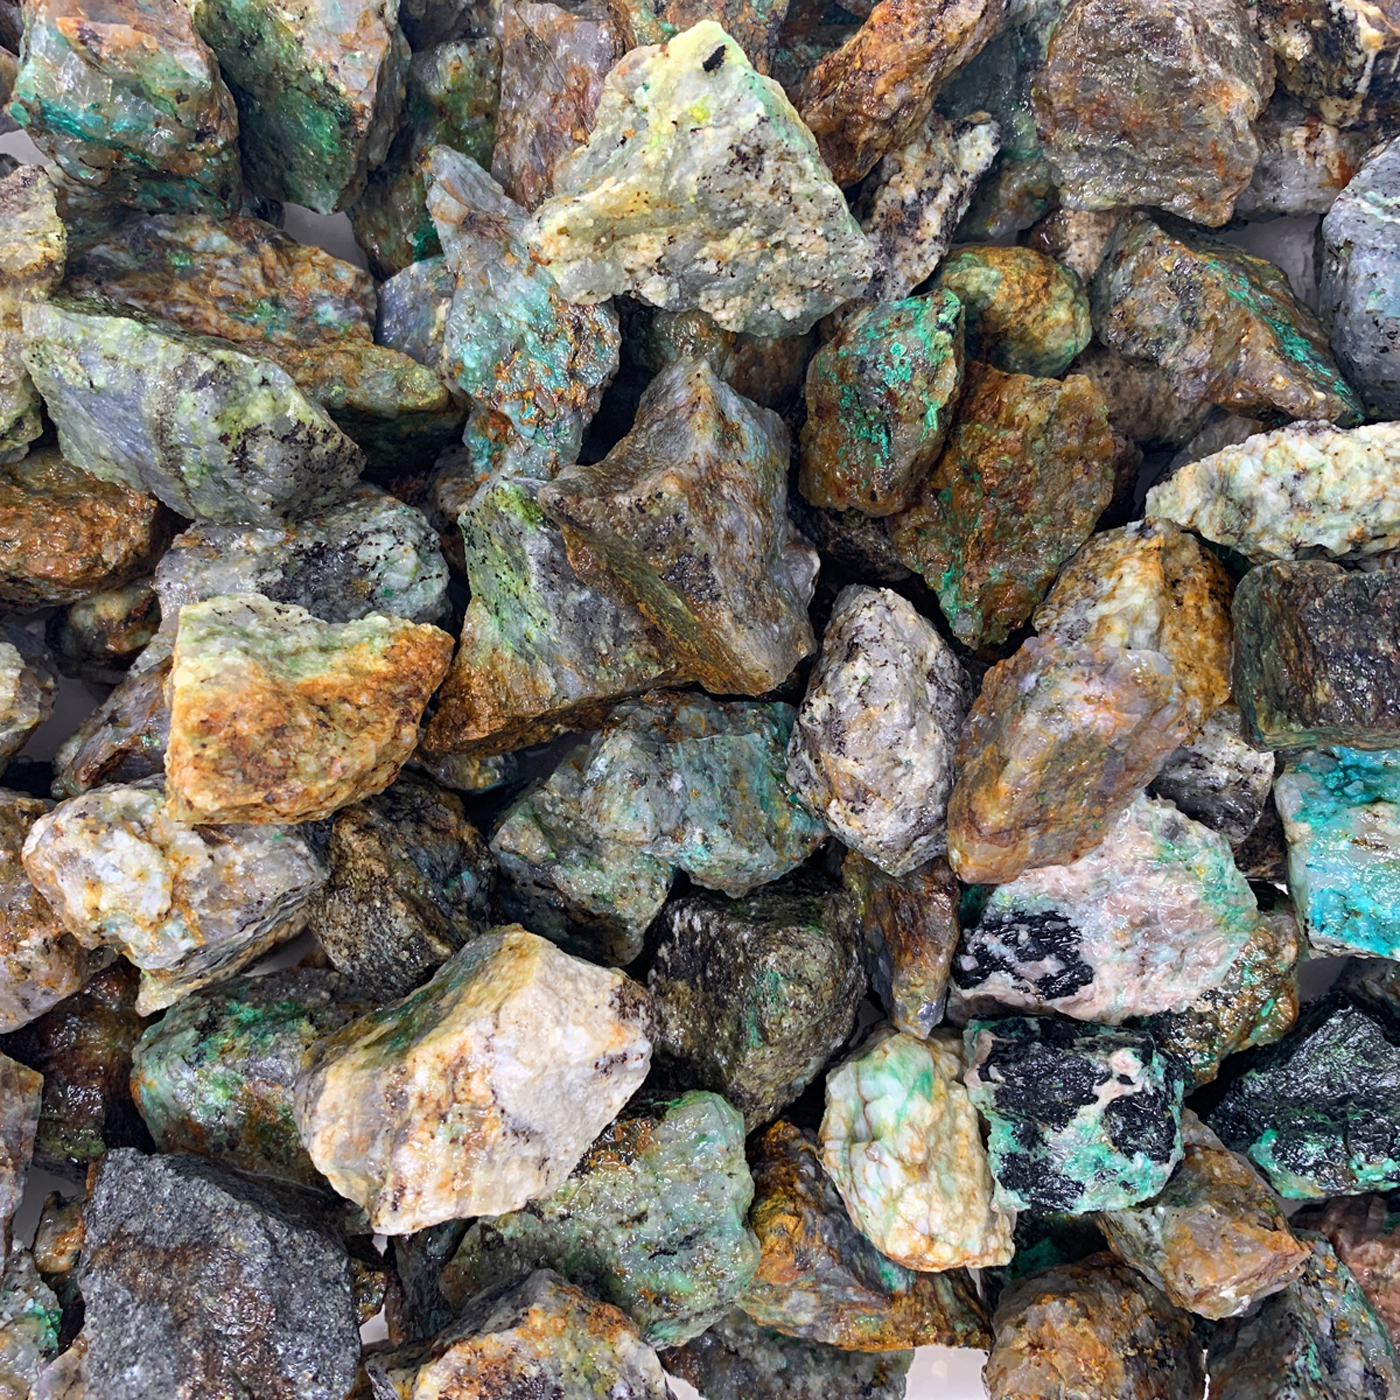 WireJewelry 3 lbs of Bulk Rough Chrysocolla Stone - Large Natural Rough Stone and Crystals for Tumbling